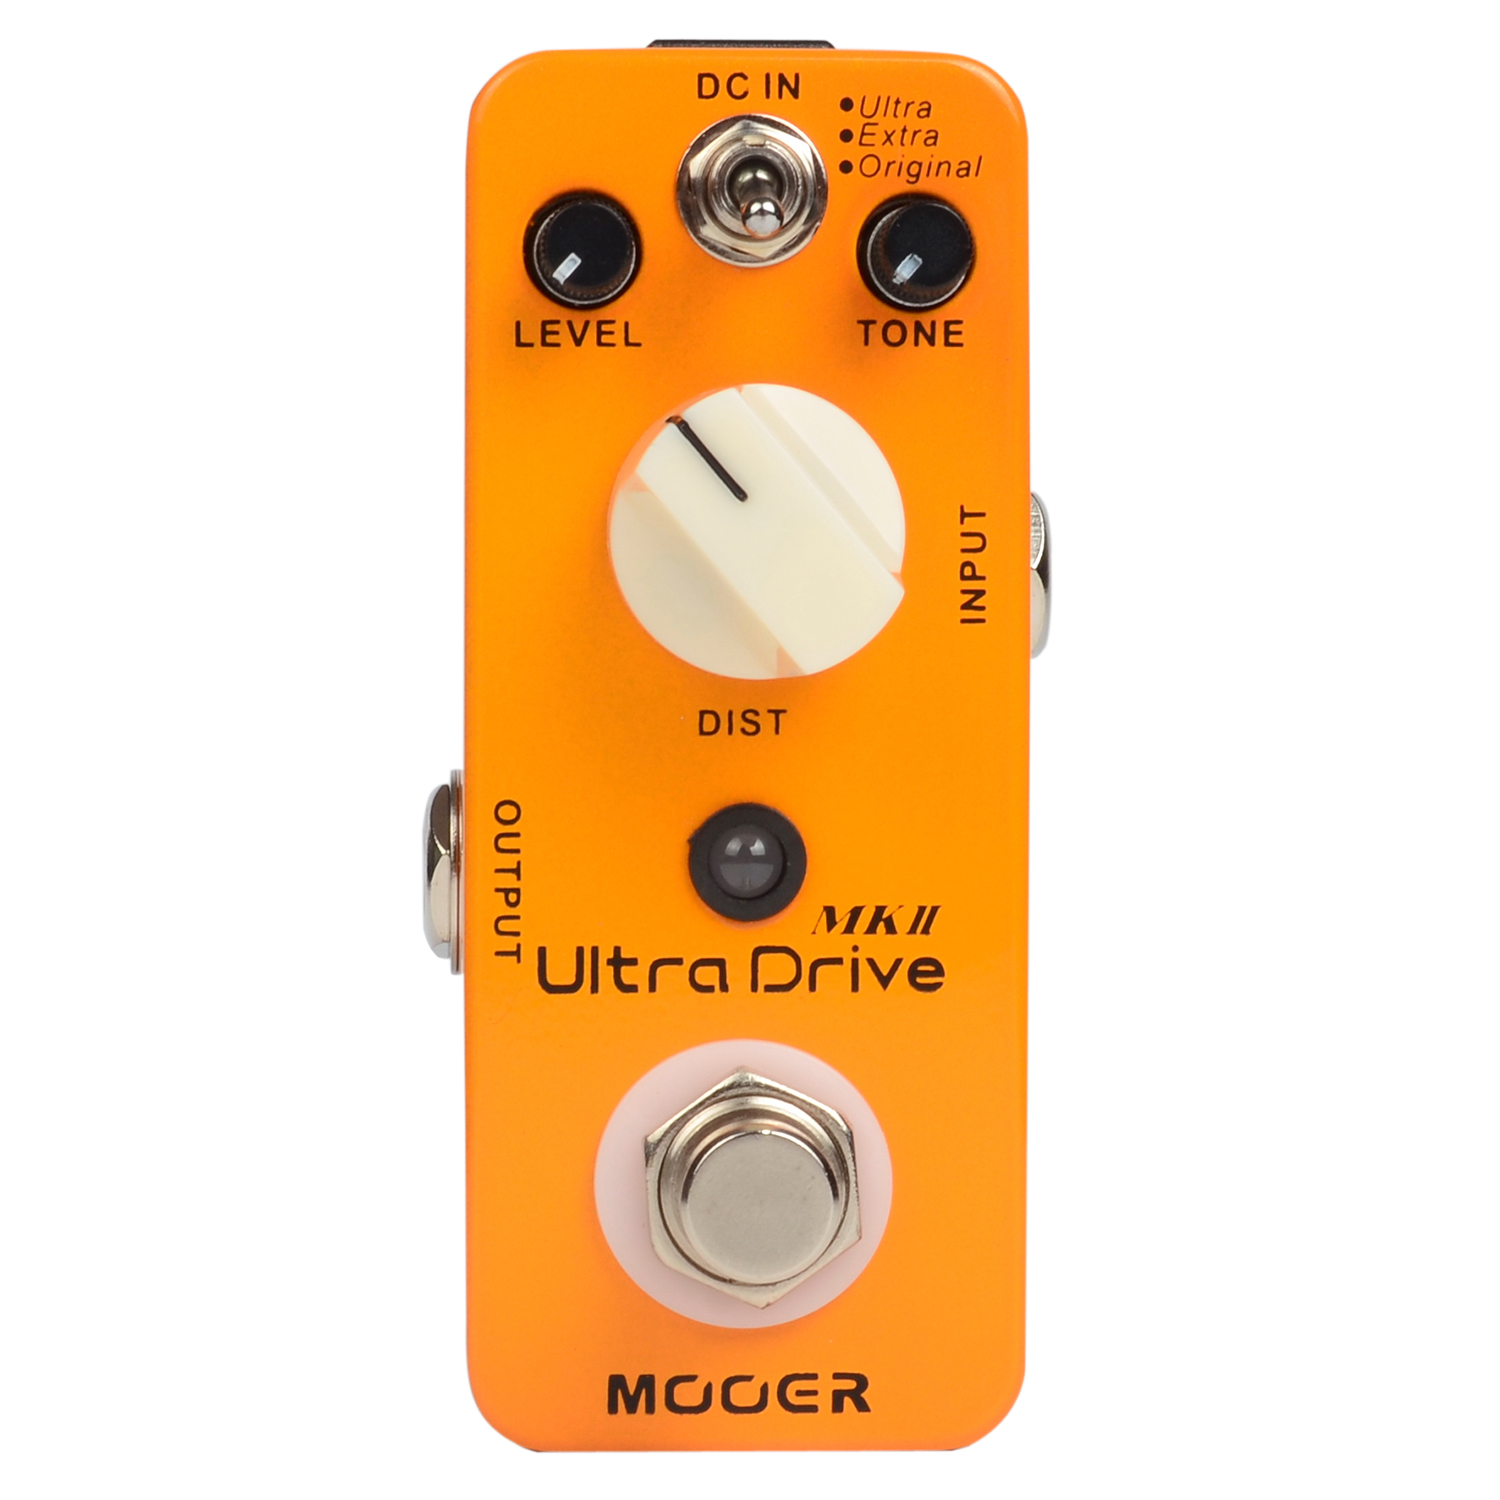 Mooer Ultra Drive MKII Distortion Effects Electric Guitar Effect Pedal True Bypass Original Extra Ultra Modes MDS6 mooer hustle drive distortion guitar effect pedal micro pedal true bypass effects with free connector and footswitch topper